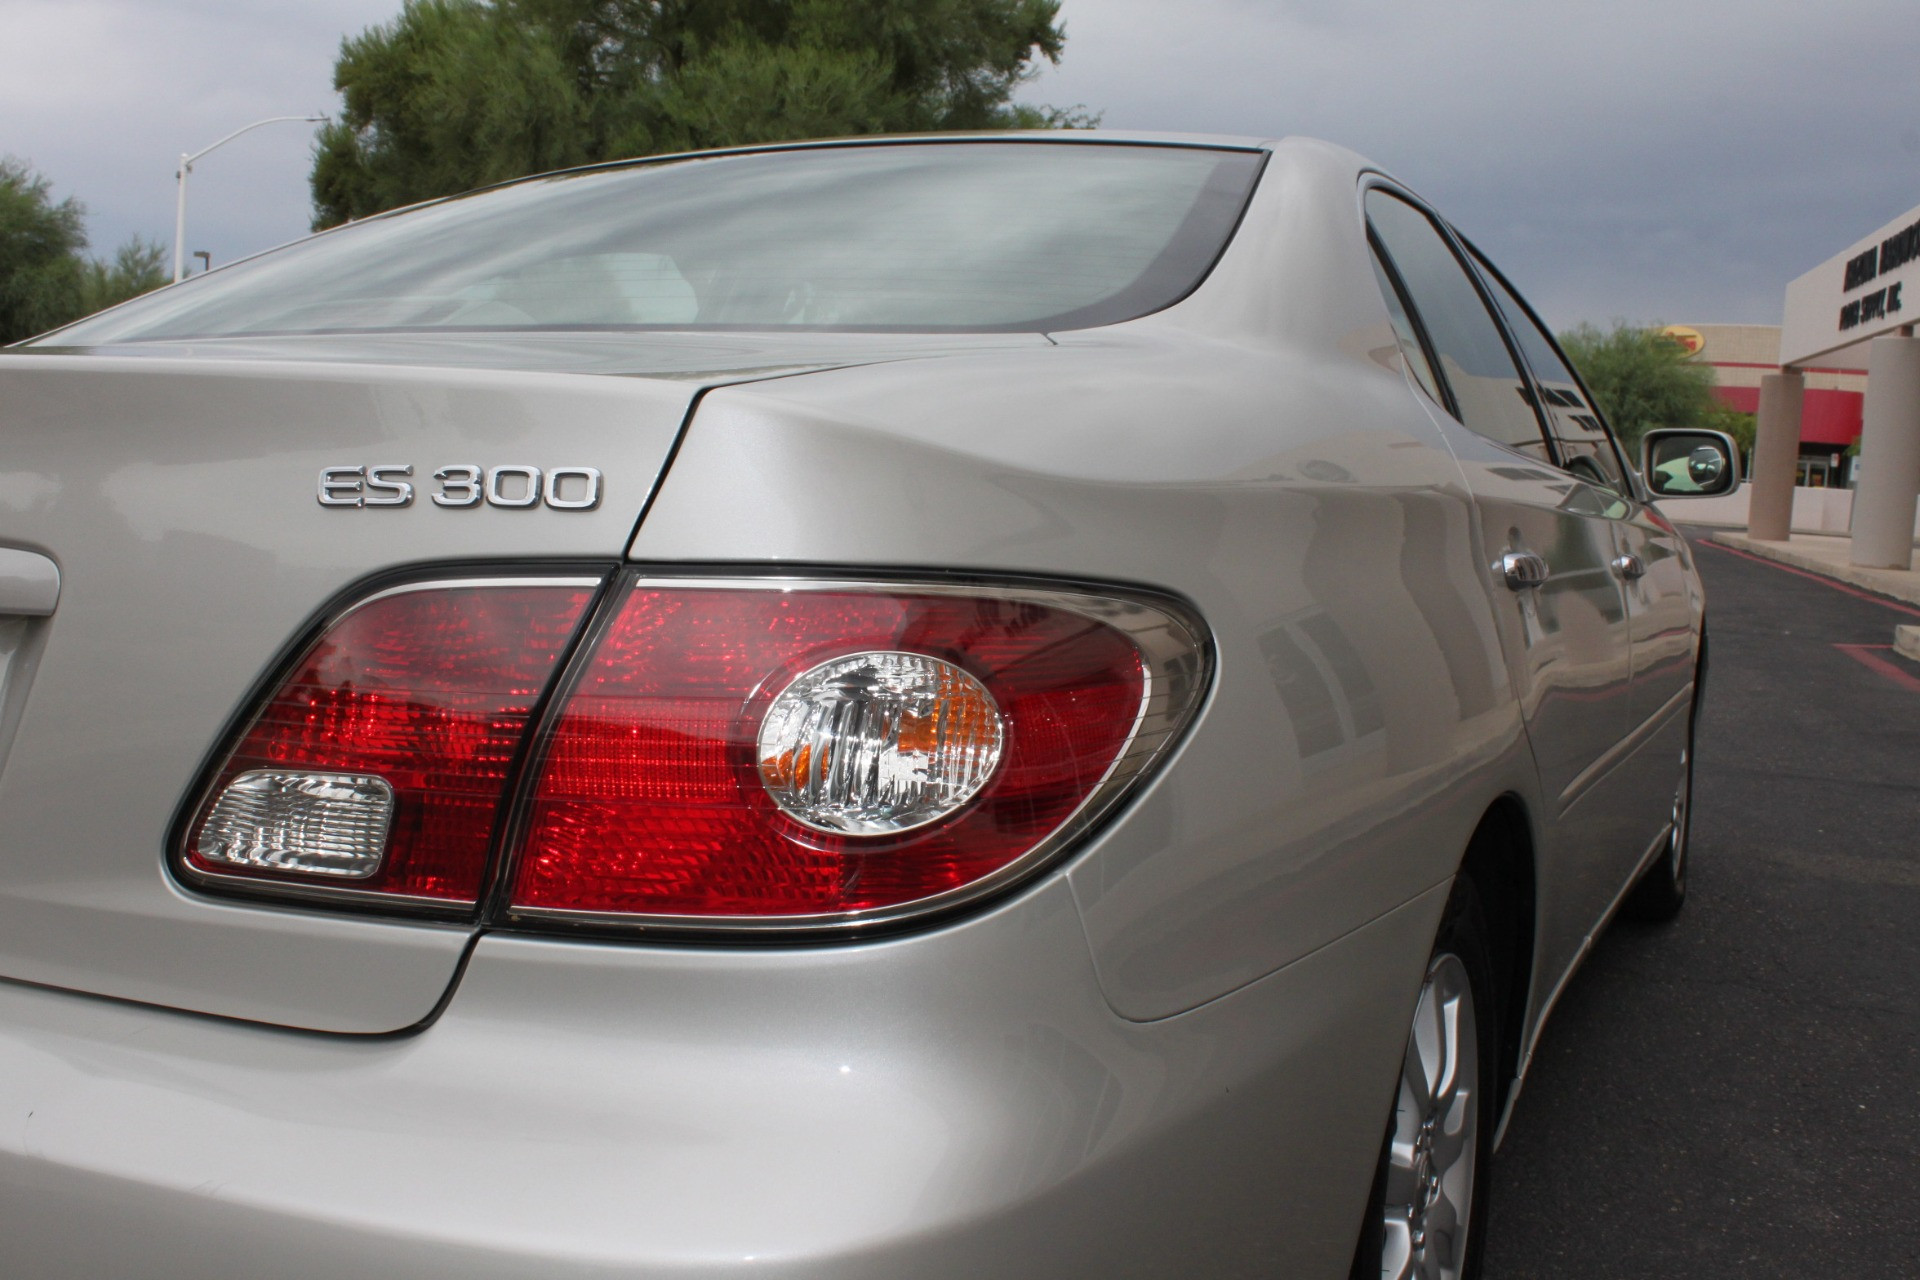 Used-2003-Lexus-ES-300-Dodge